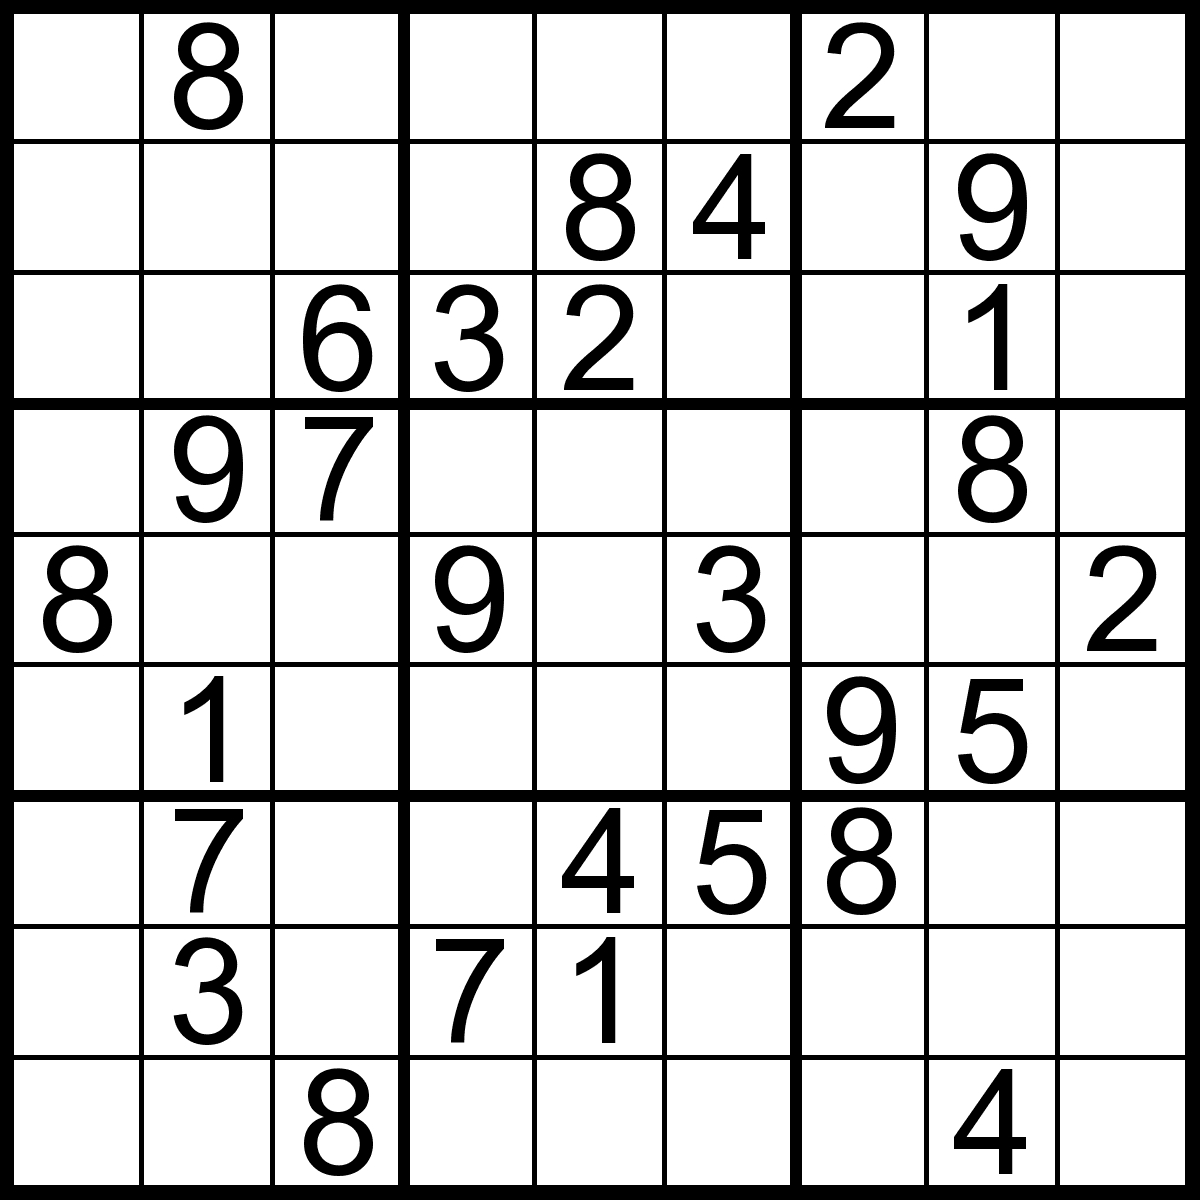 How To Solve Easy Sudoku Puzzles | Riyadmahmud111